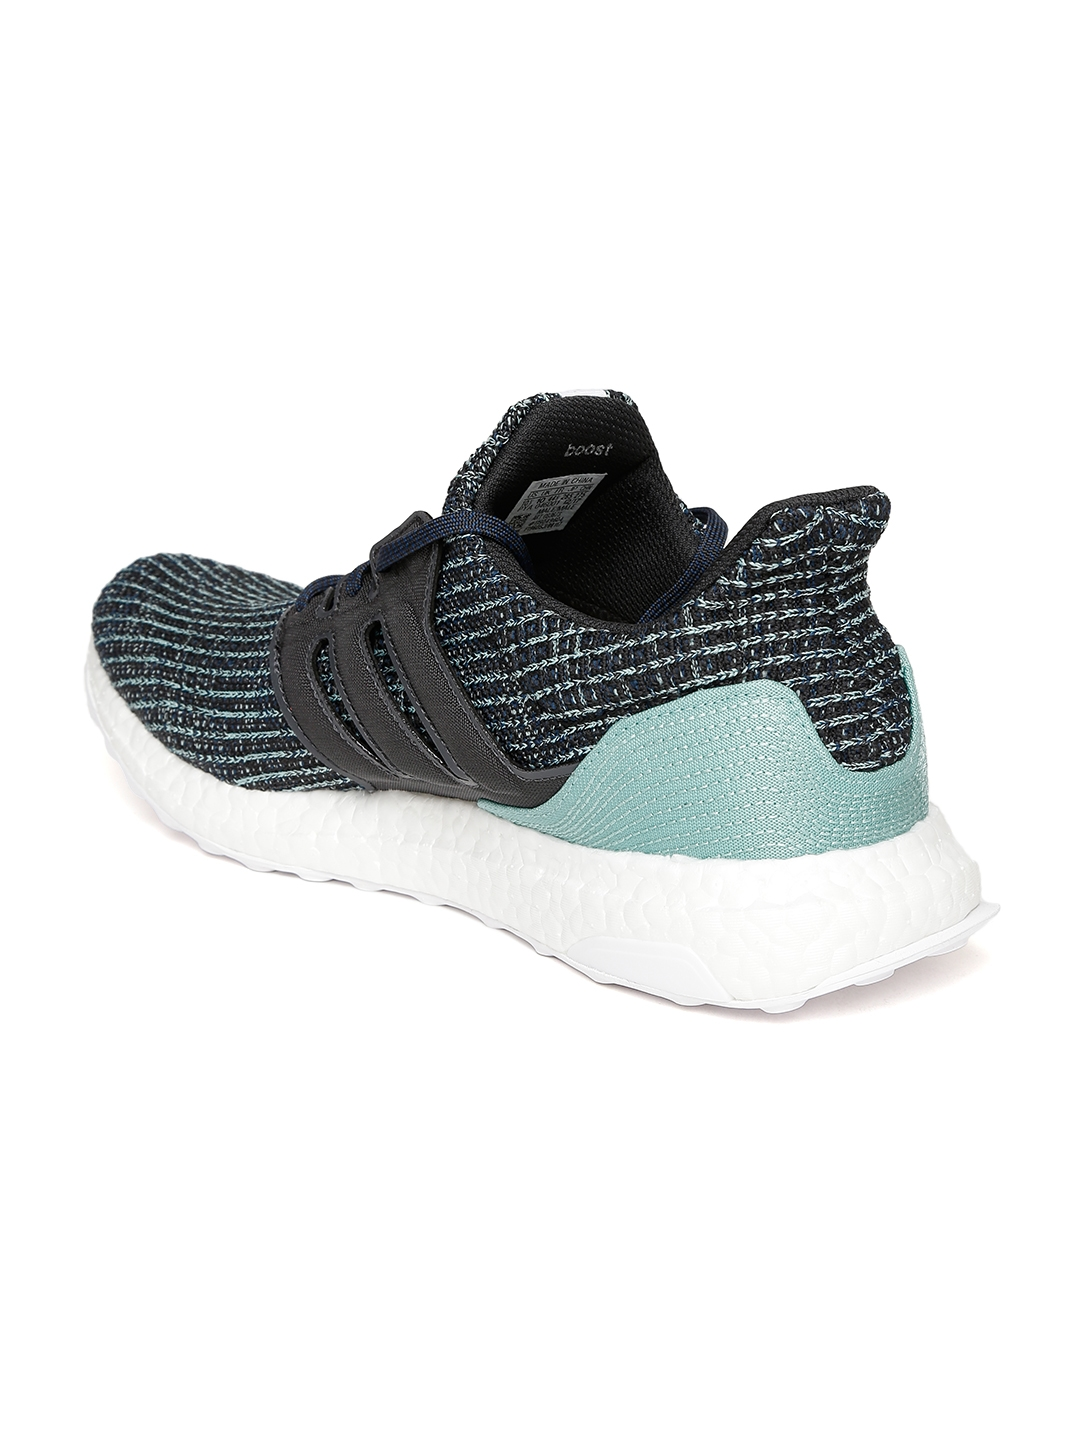 6a5fa3048 Buy ADIDAS Men Blue   Black Ultraboost PARLEY Running Shoes - Sports ...